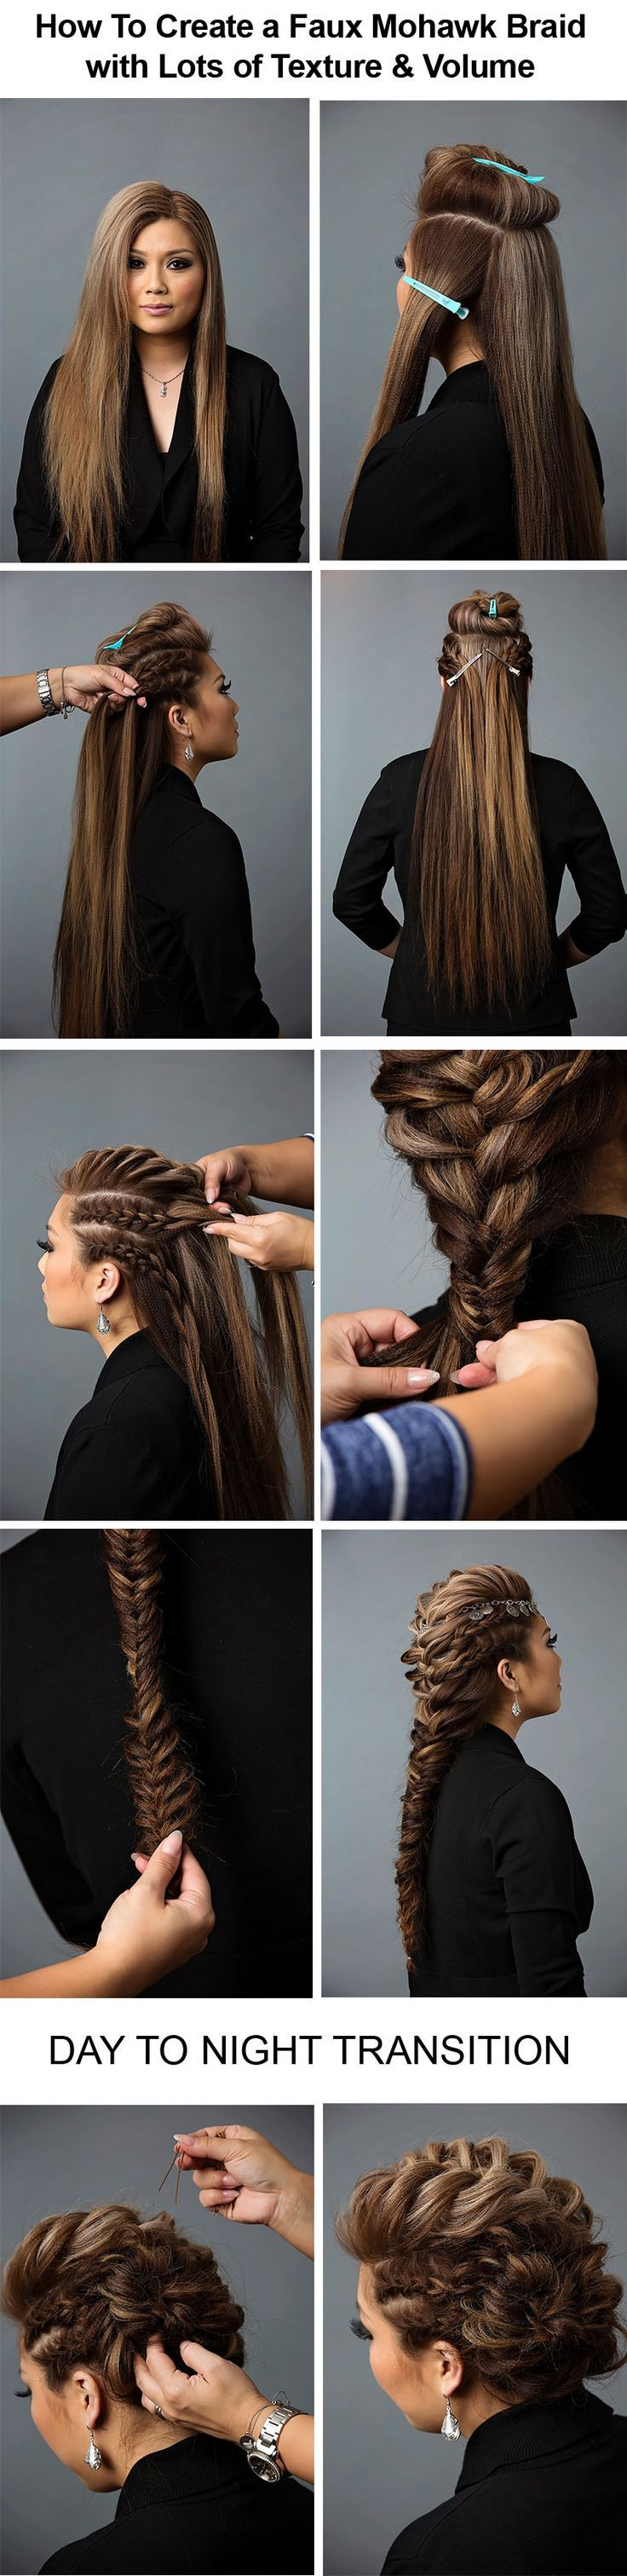 nice Curly Braided Top Knot Hairstyle Tutorial by http://www.danazhaircuts.xyz/hair-tutorials/curly-braided-top-knot-hairstyle-tutorial/